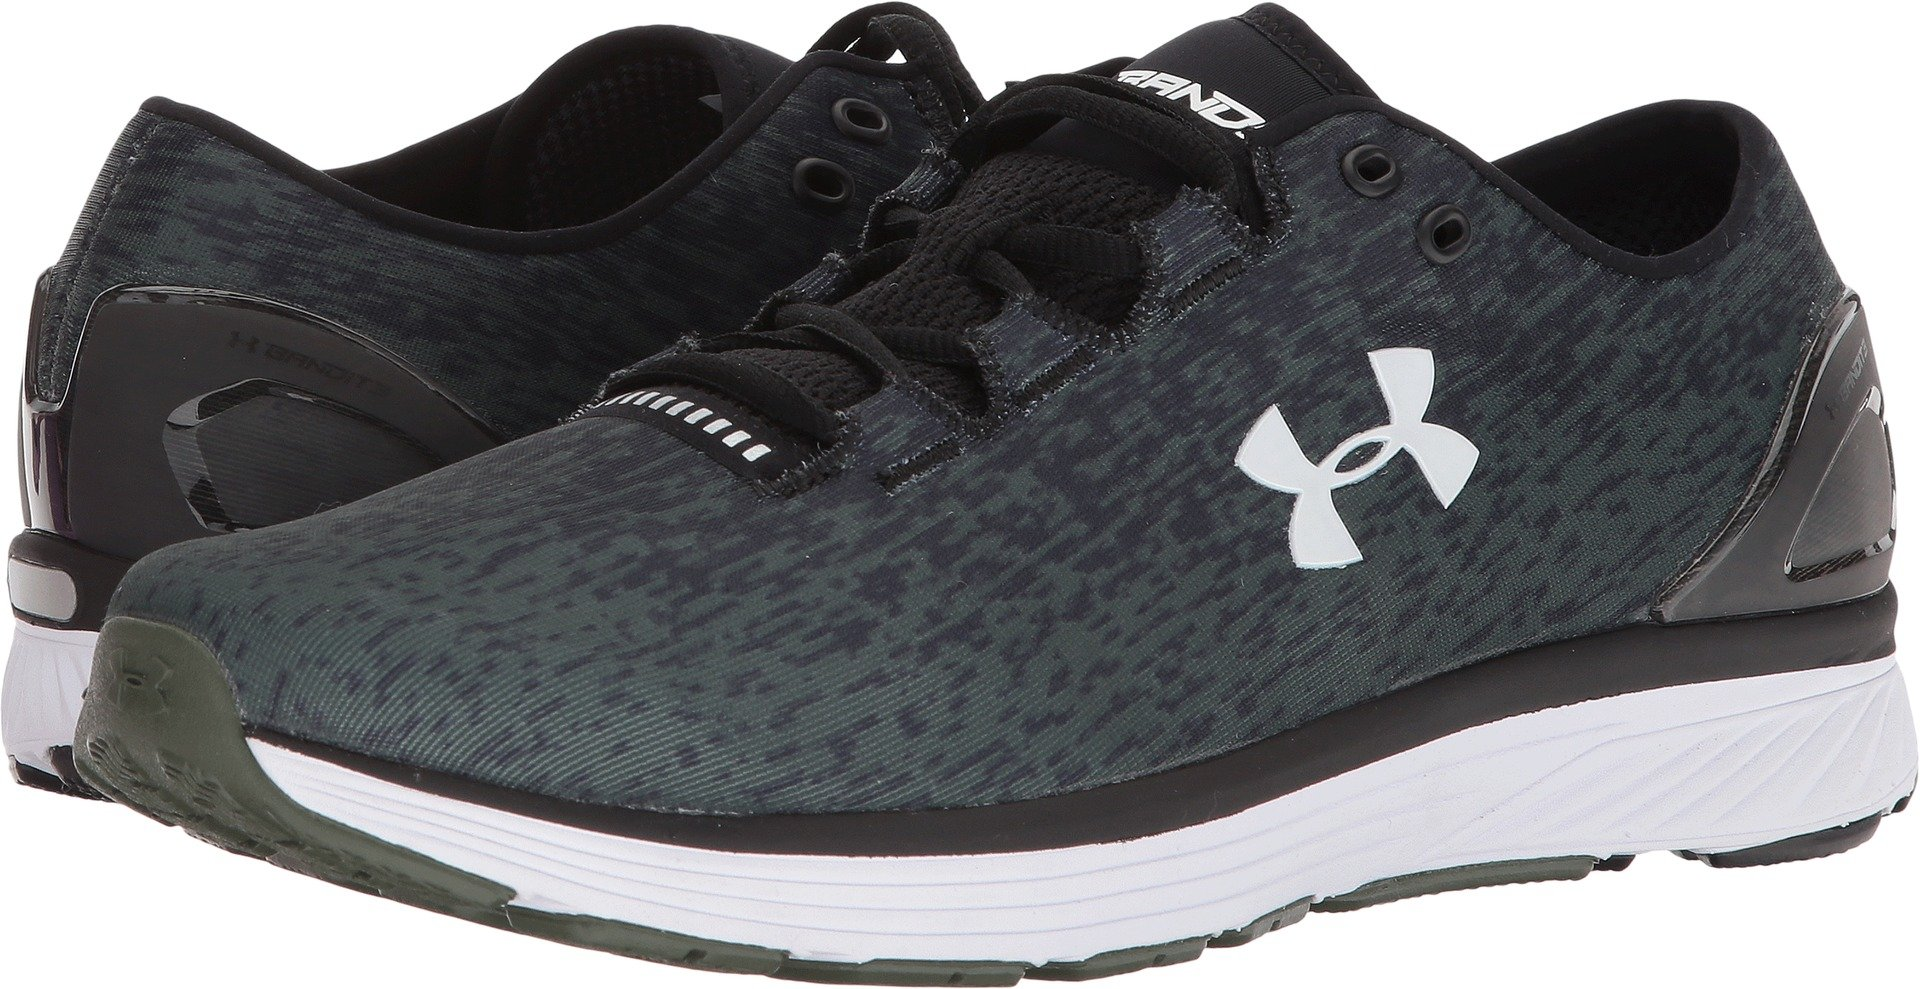 Under Armour  Men's UA Charged Bandit 3 Ombre Black/Downtown Green/White 15 D US by Under Armour